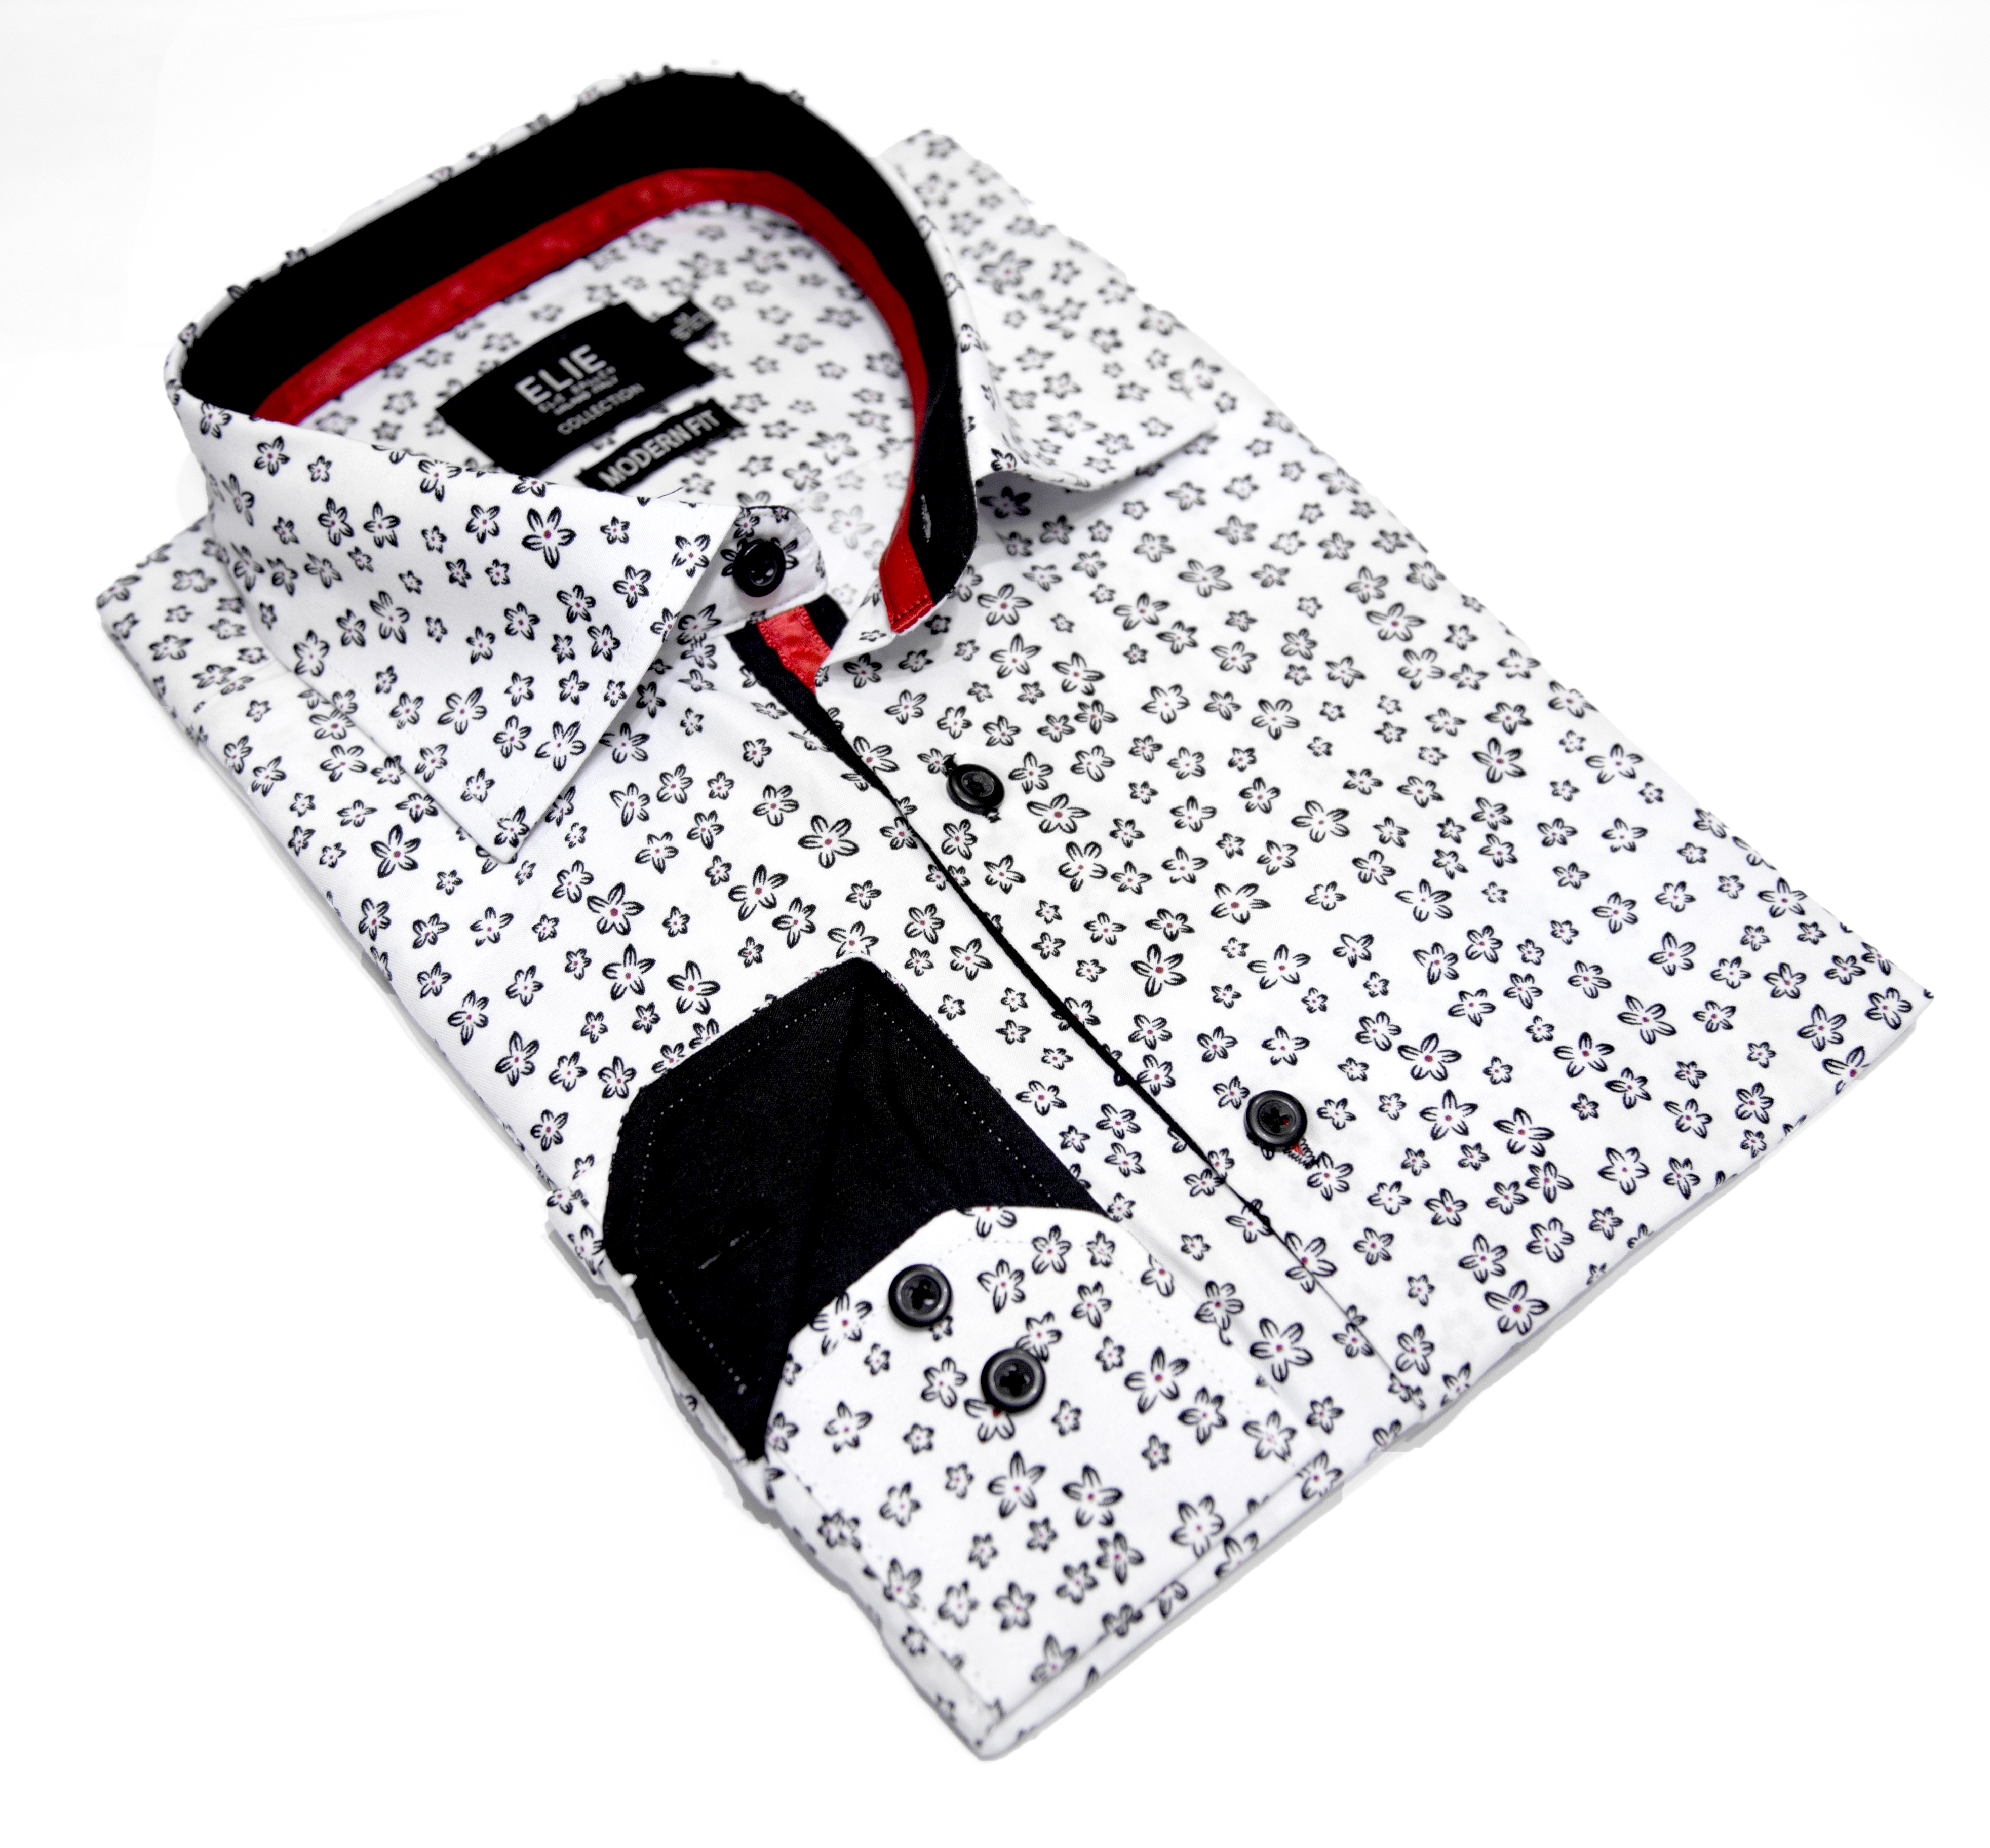 Small Floral Print Men's Shirts/Button Down CEBSH329M